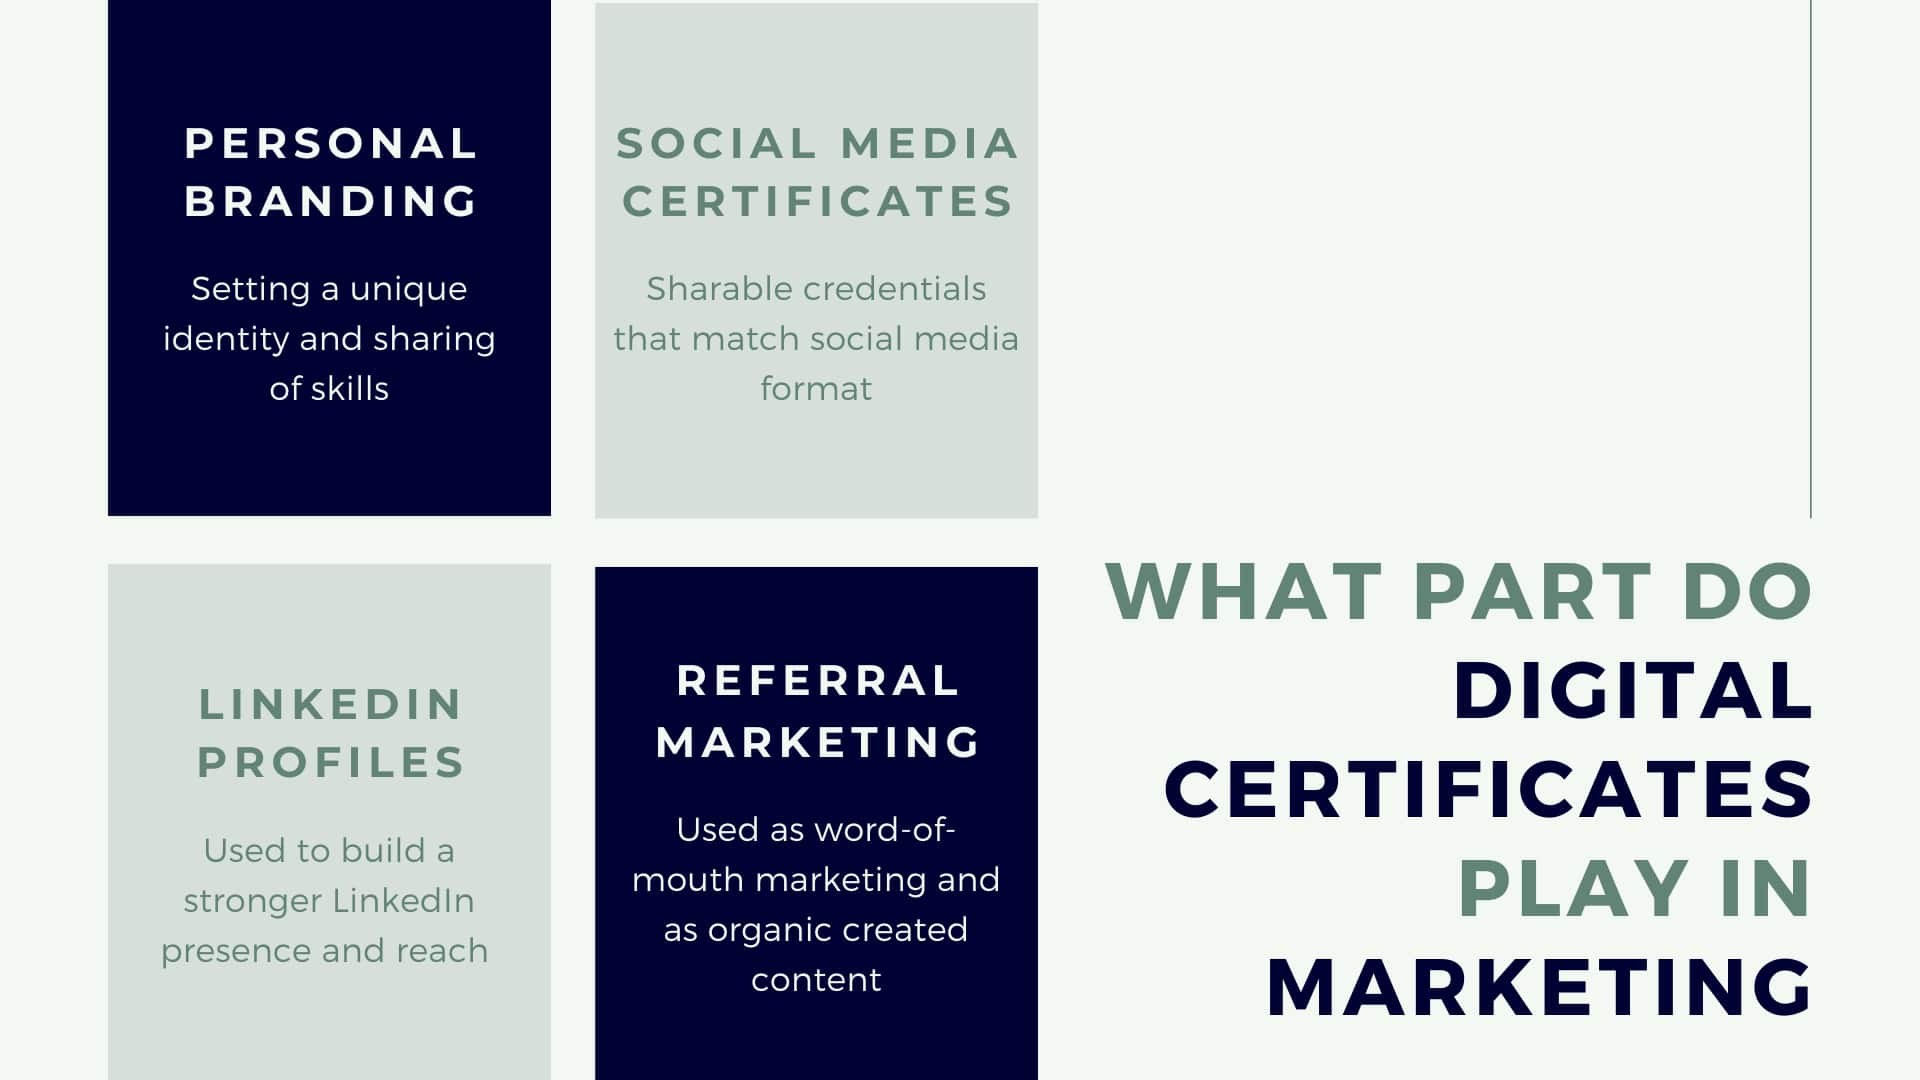 what part do digital certificates play in marketing